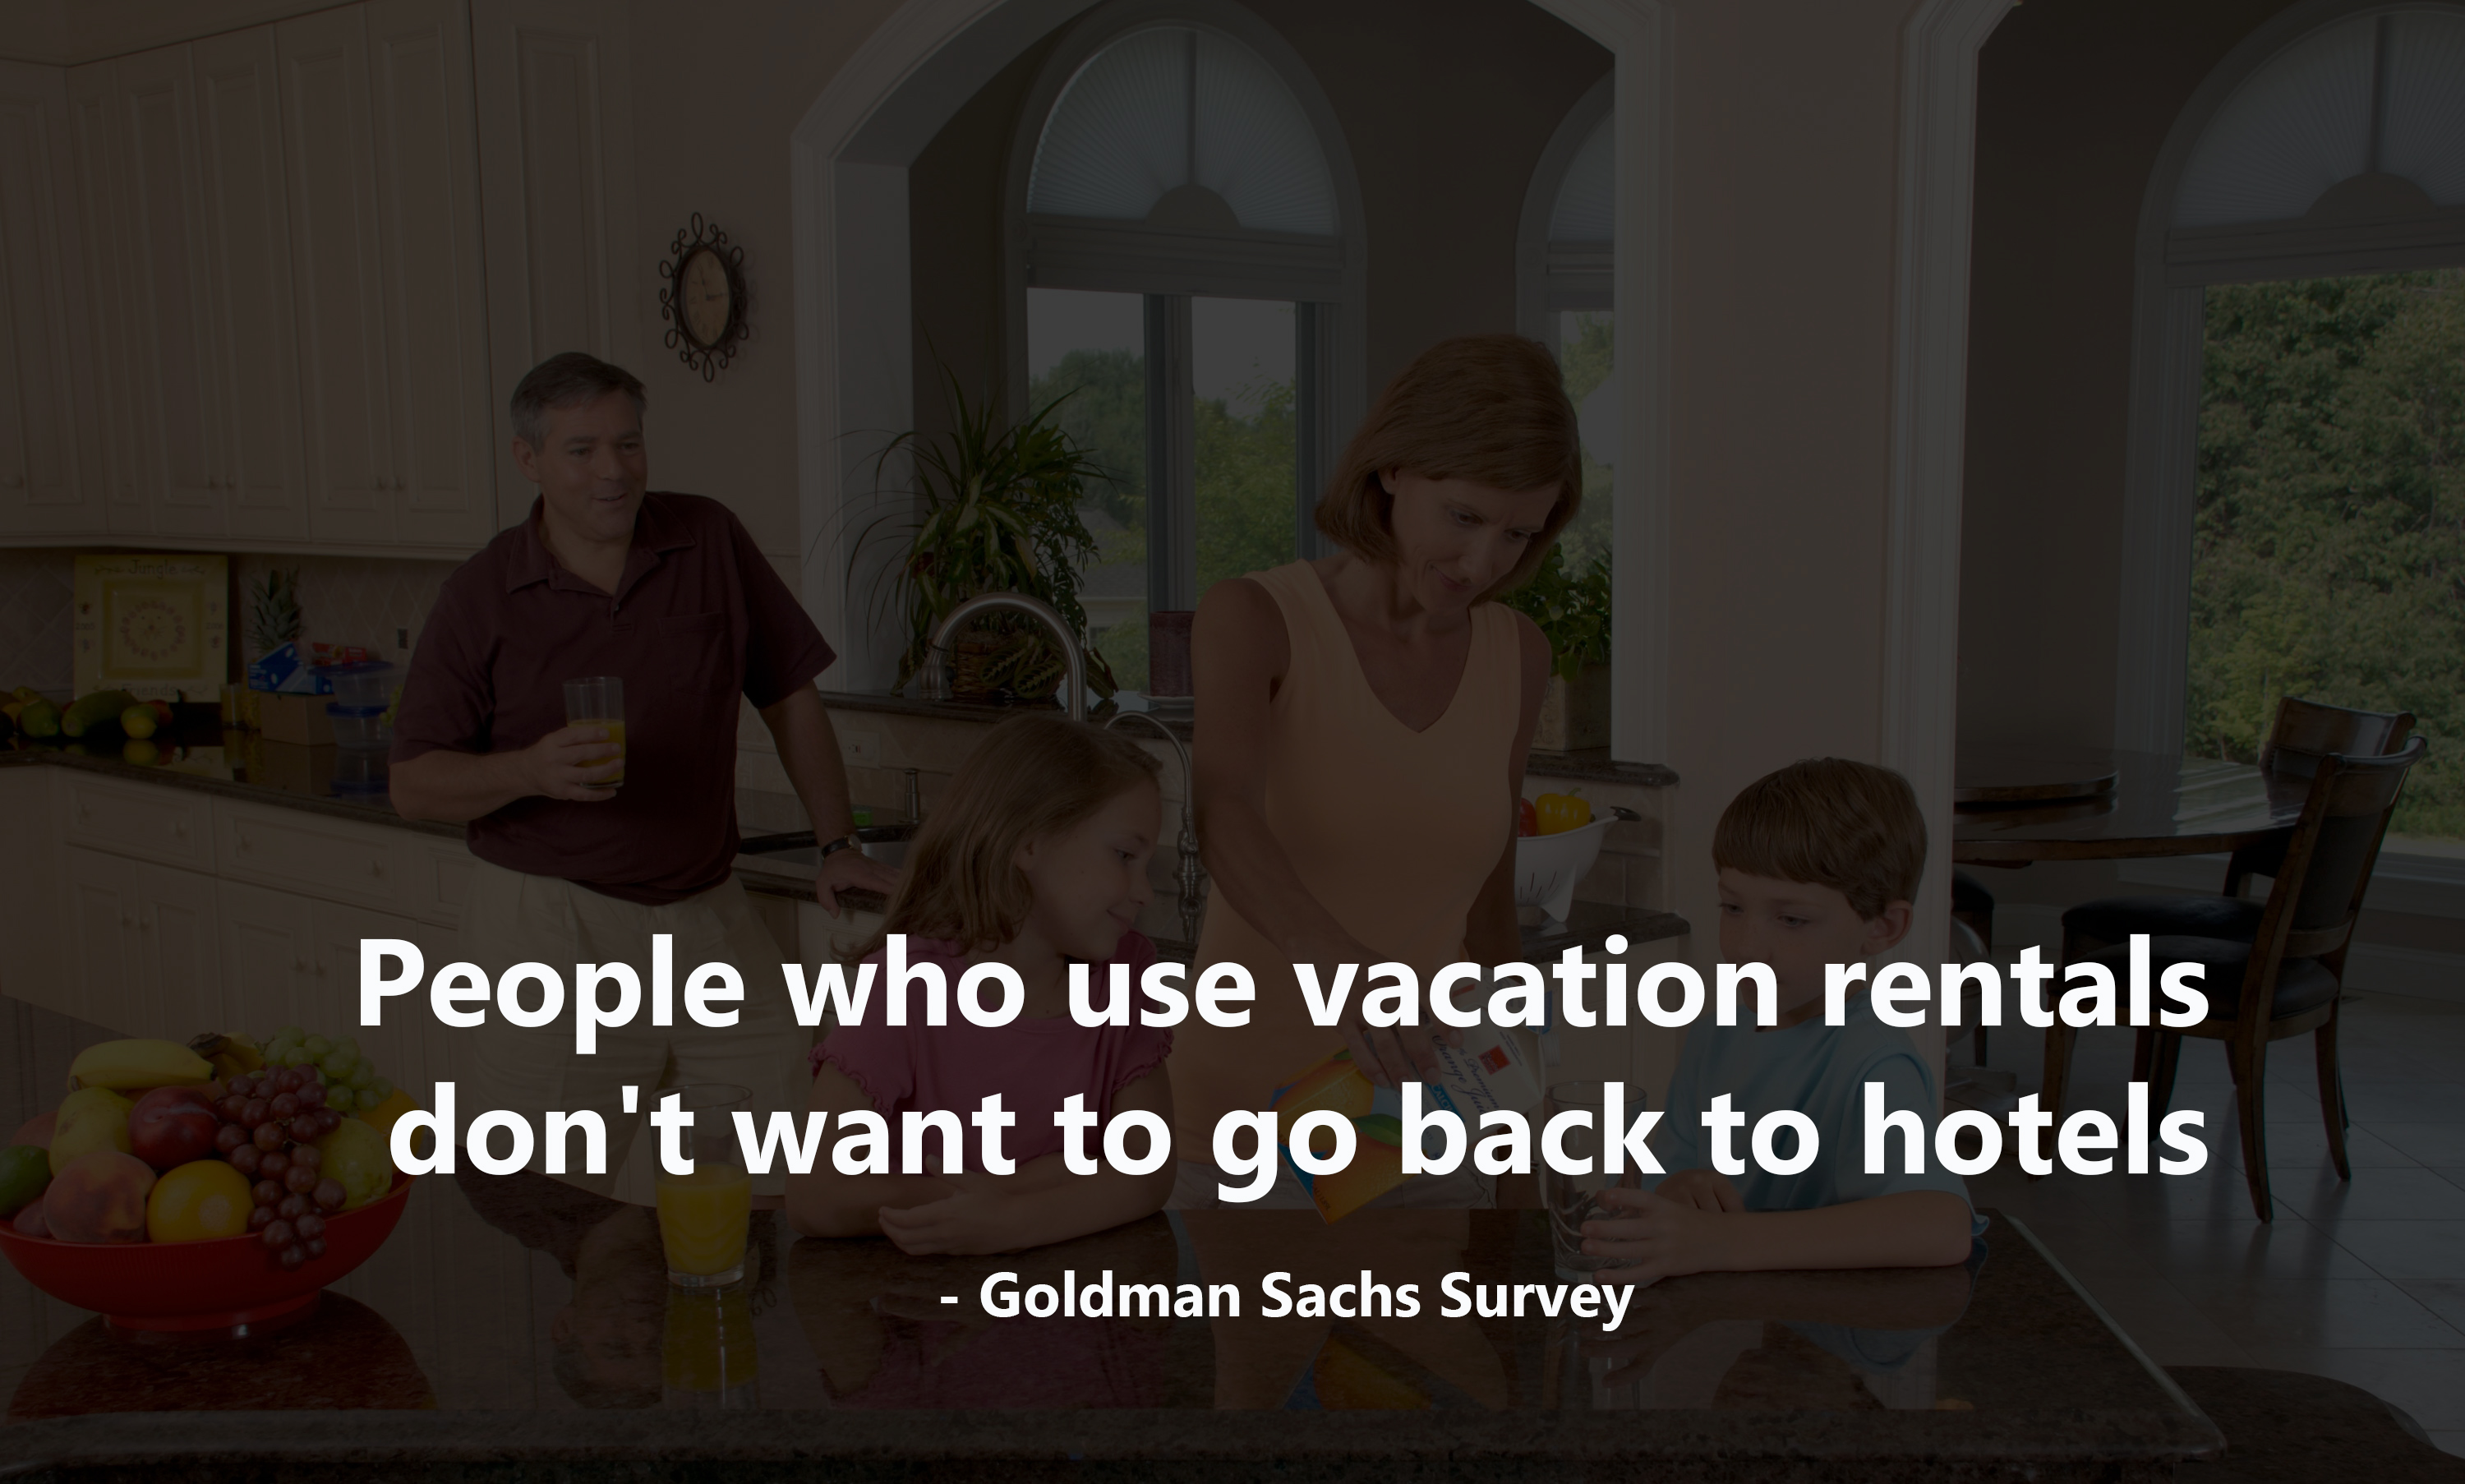 The survey says people Who use Airbnb don't want to go back to hotels.